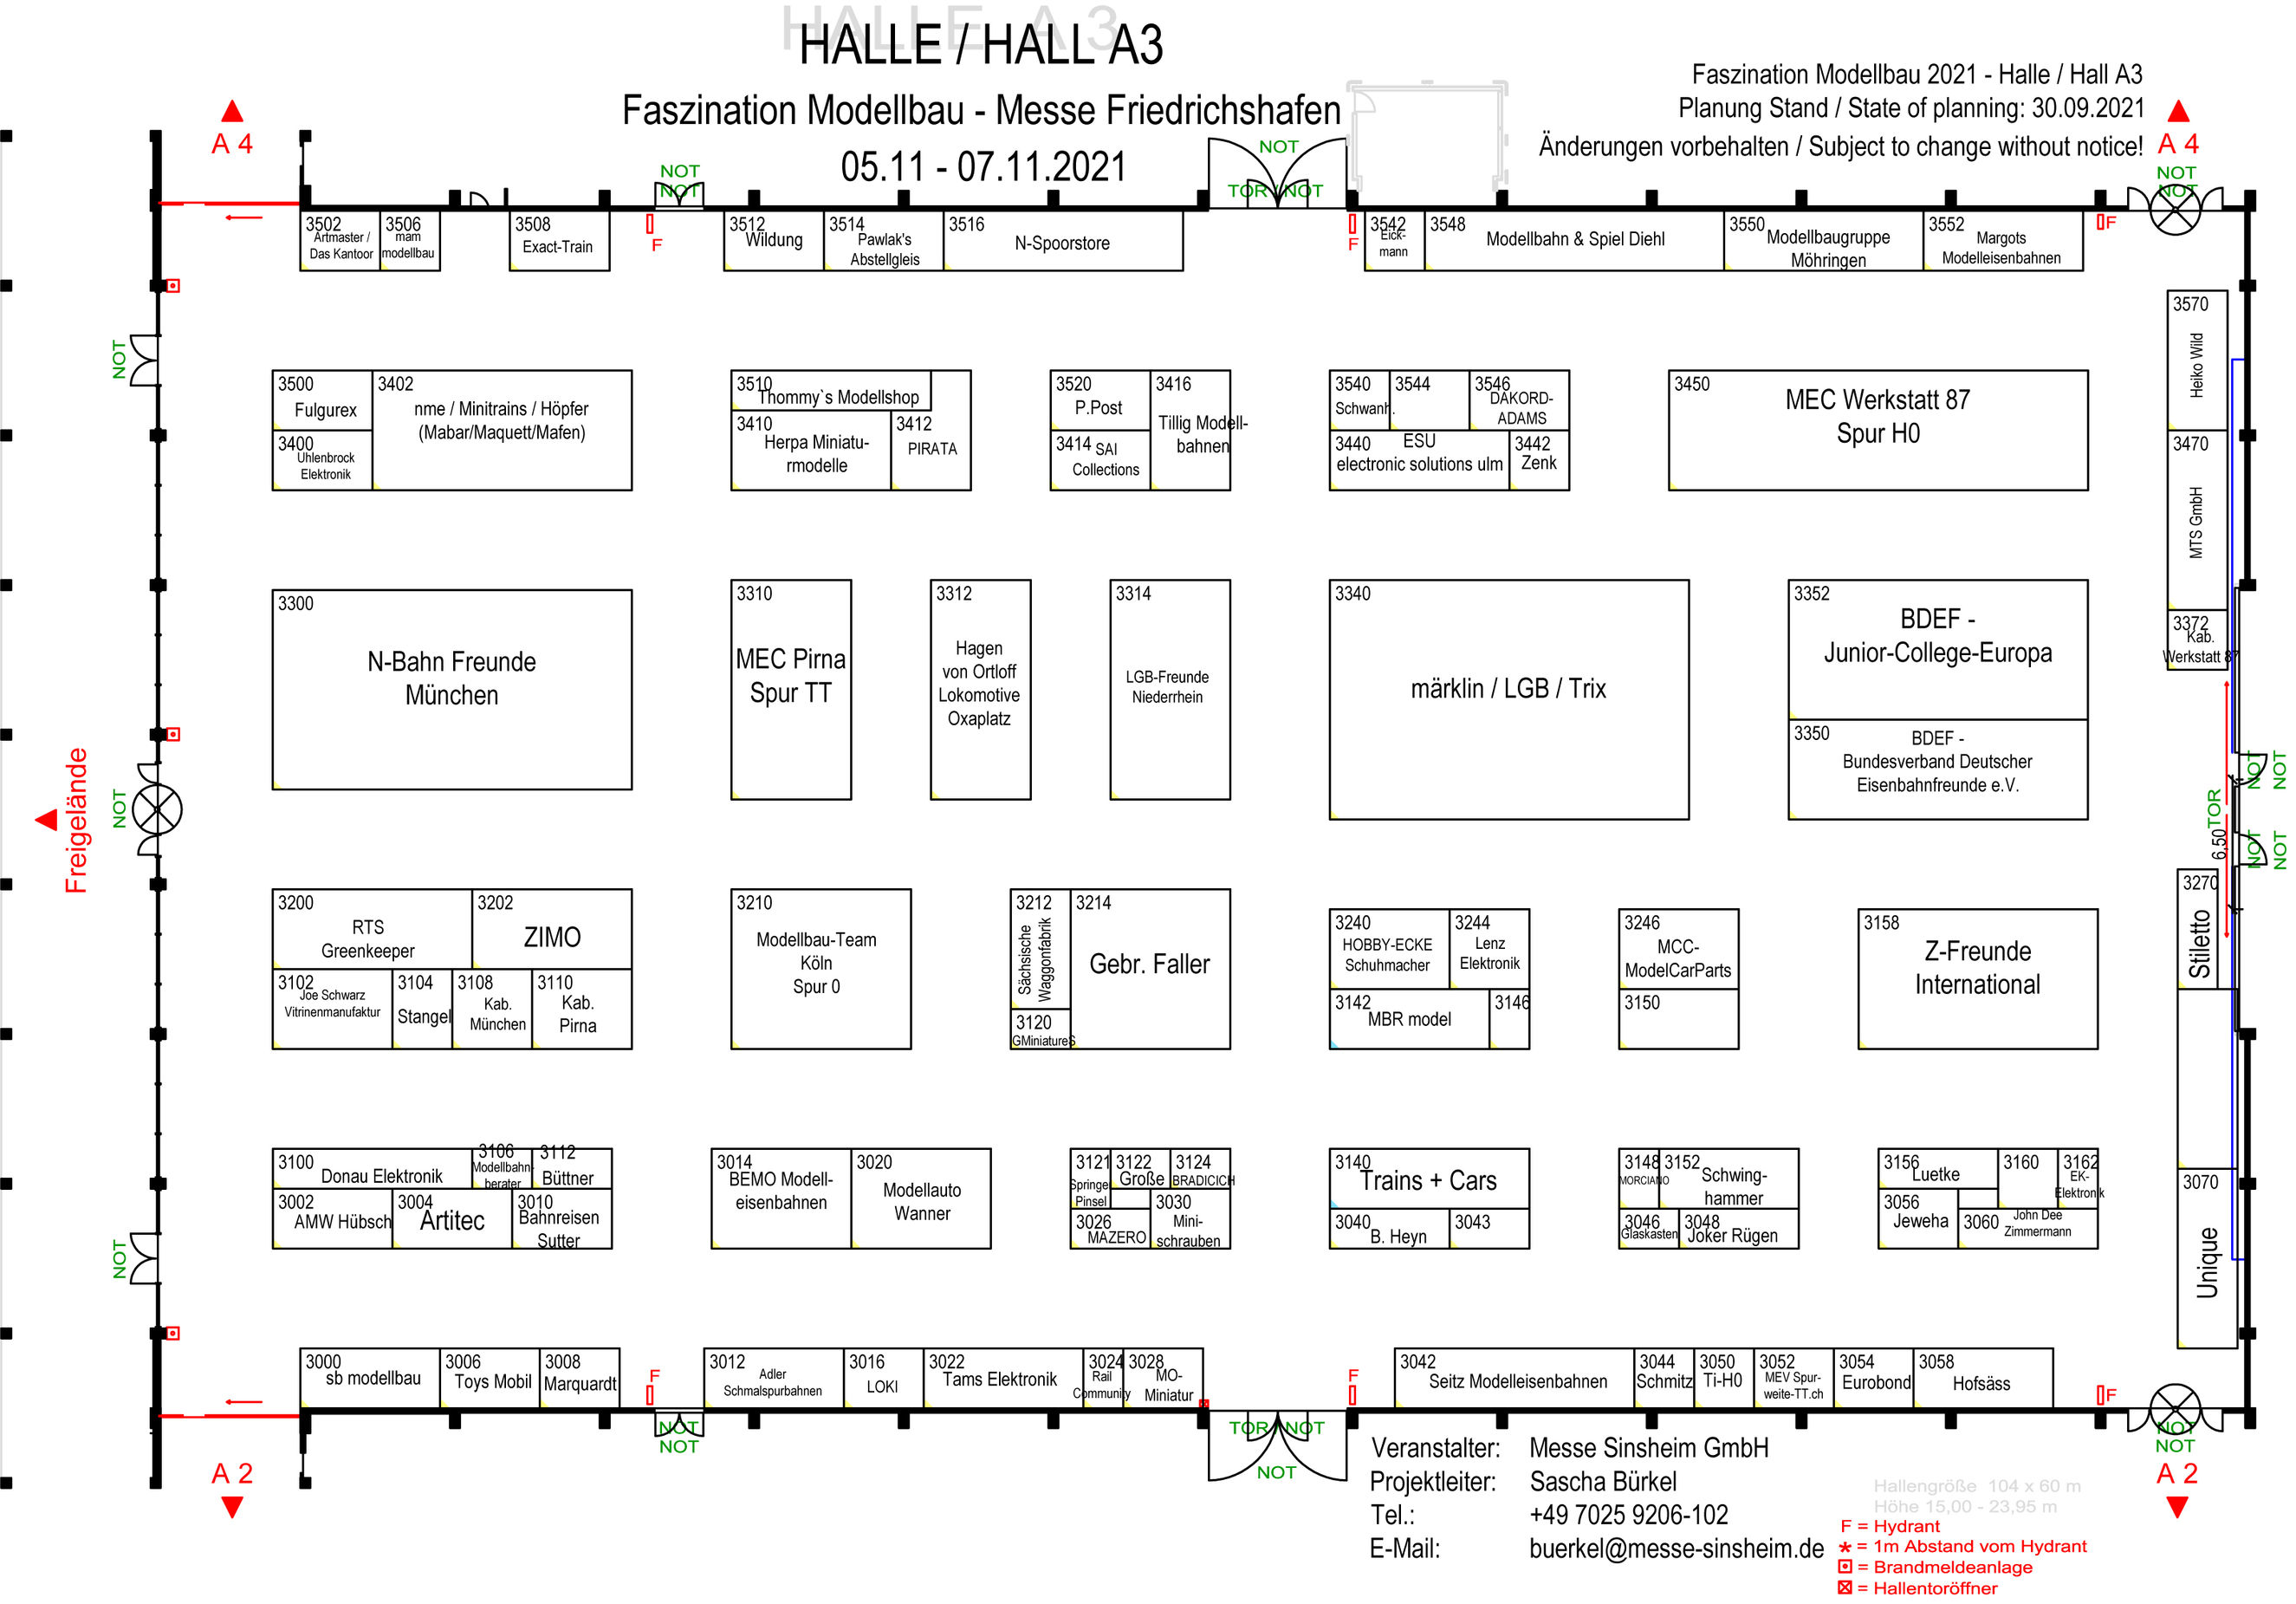 Halle A3